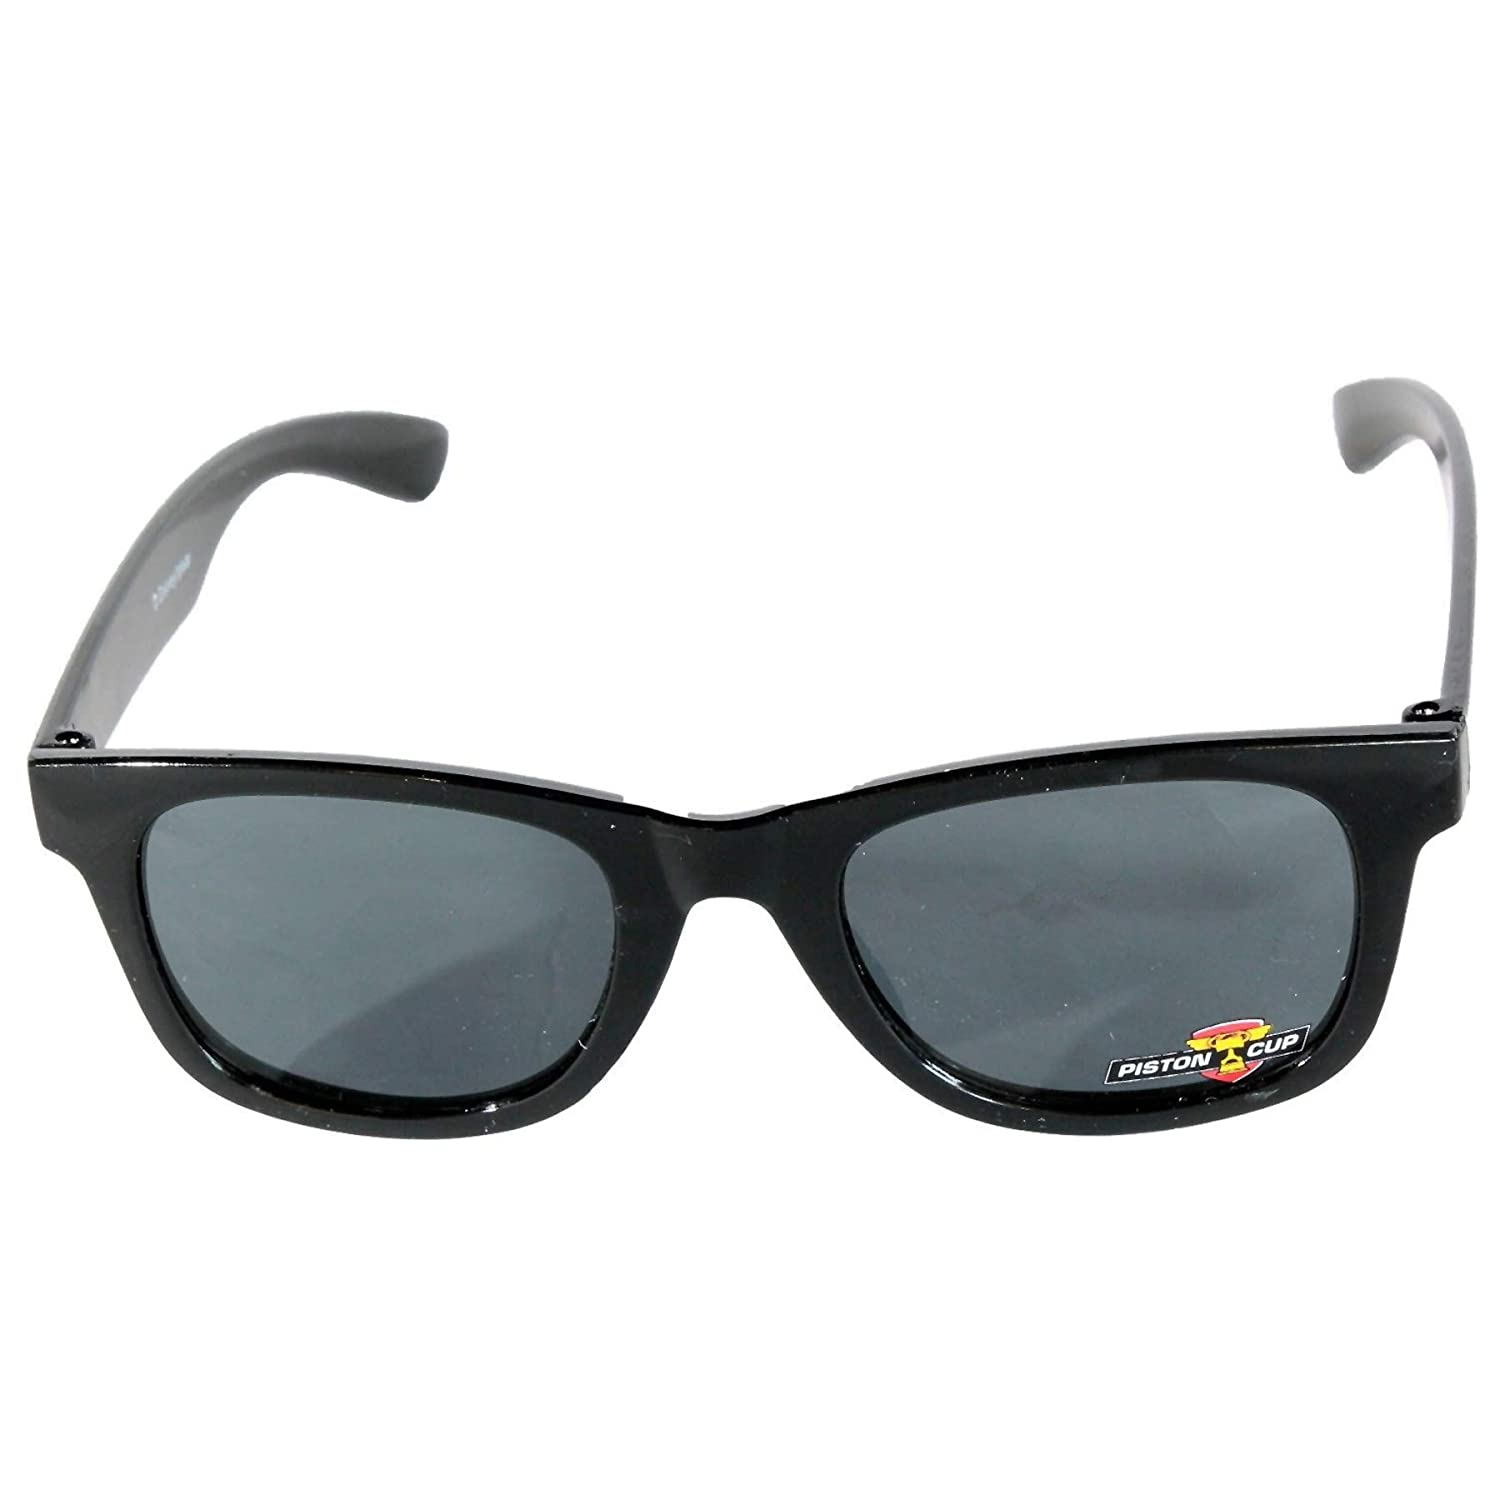 Childrens Character Sunglasses UV protection for Holiday Disney Cars Black 4304